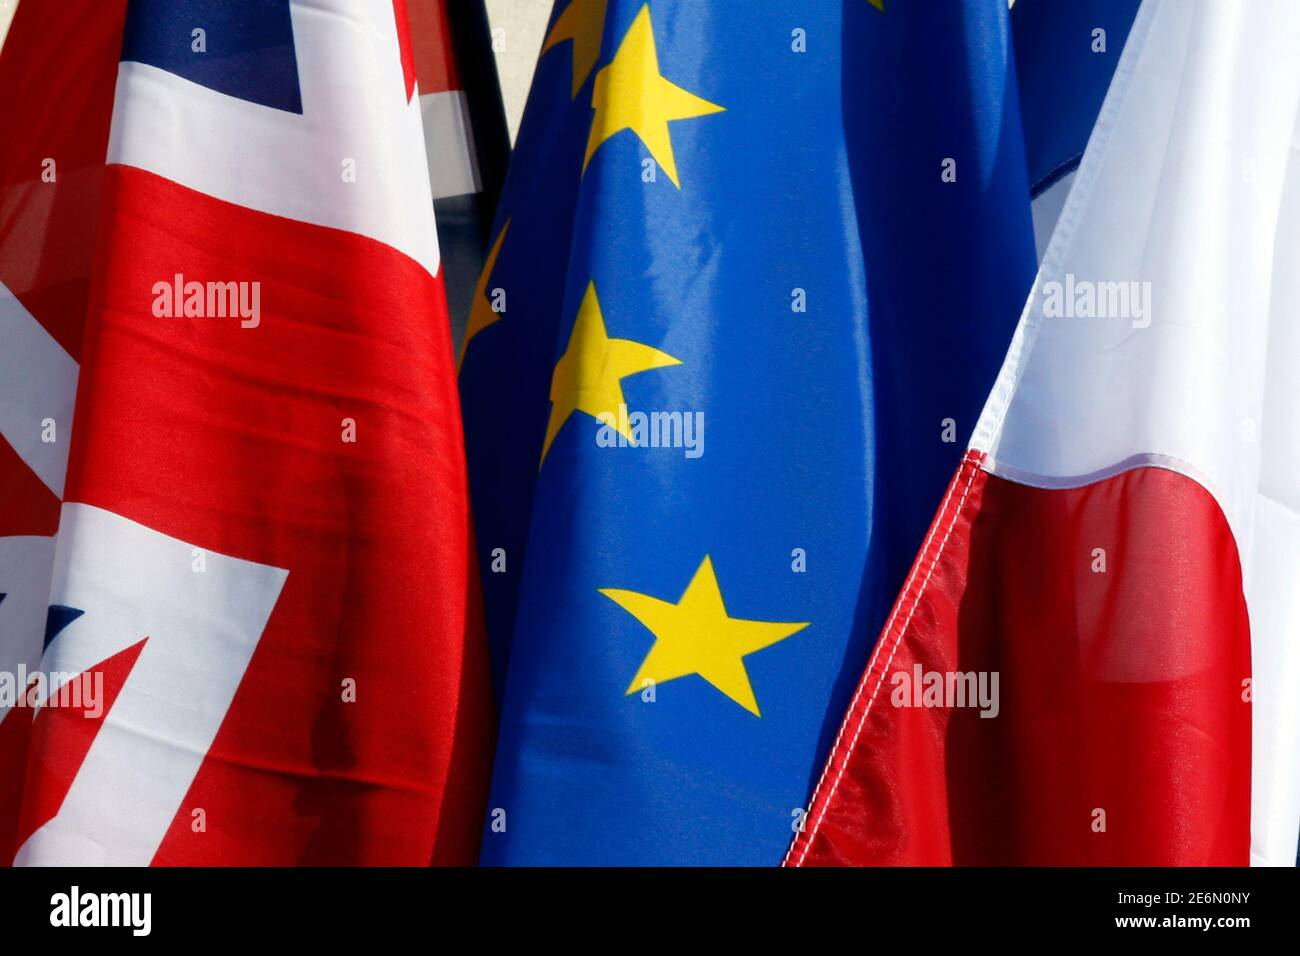 French flag, British Union Jack flag and European flag fly on the Amiens city hall during a Franco-Britain summit in Amiens, northern France, March 3, 2016. REUTERS/Philippe Wojazer Stock Photo